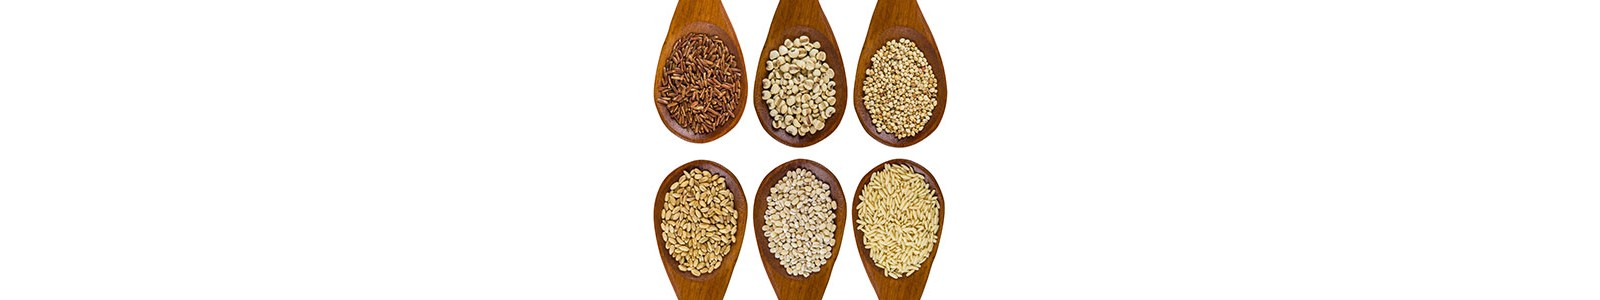 Healthy Grains & Flours